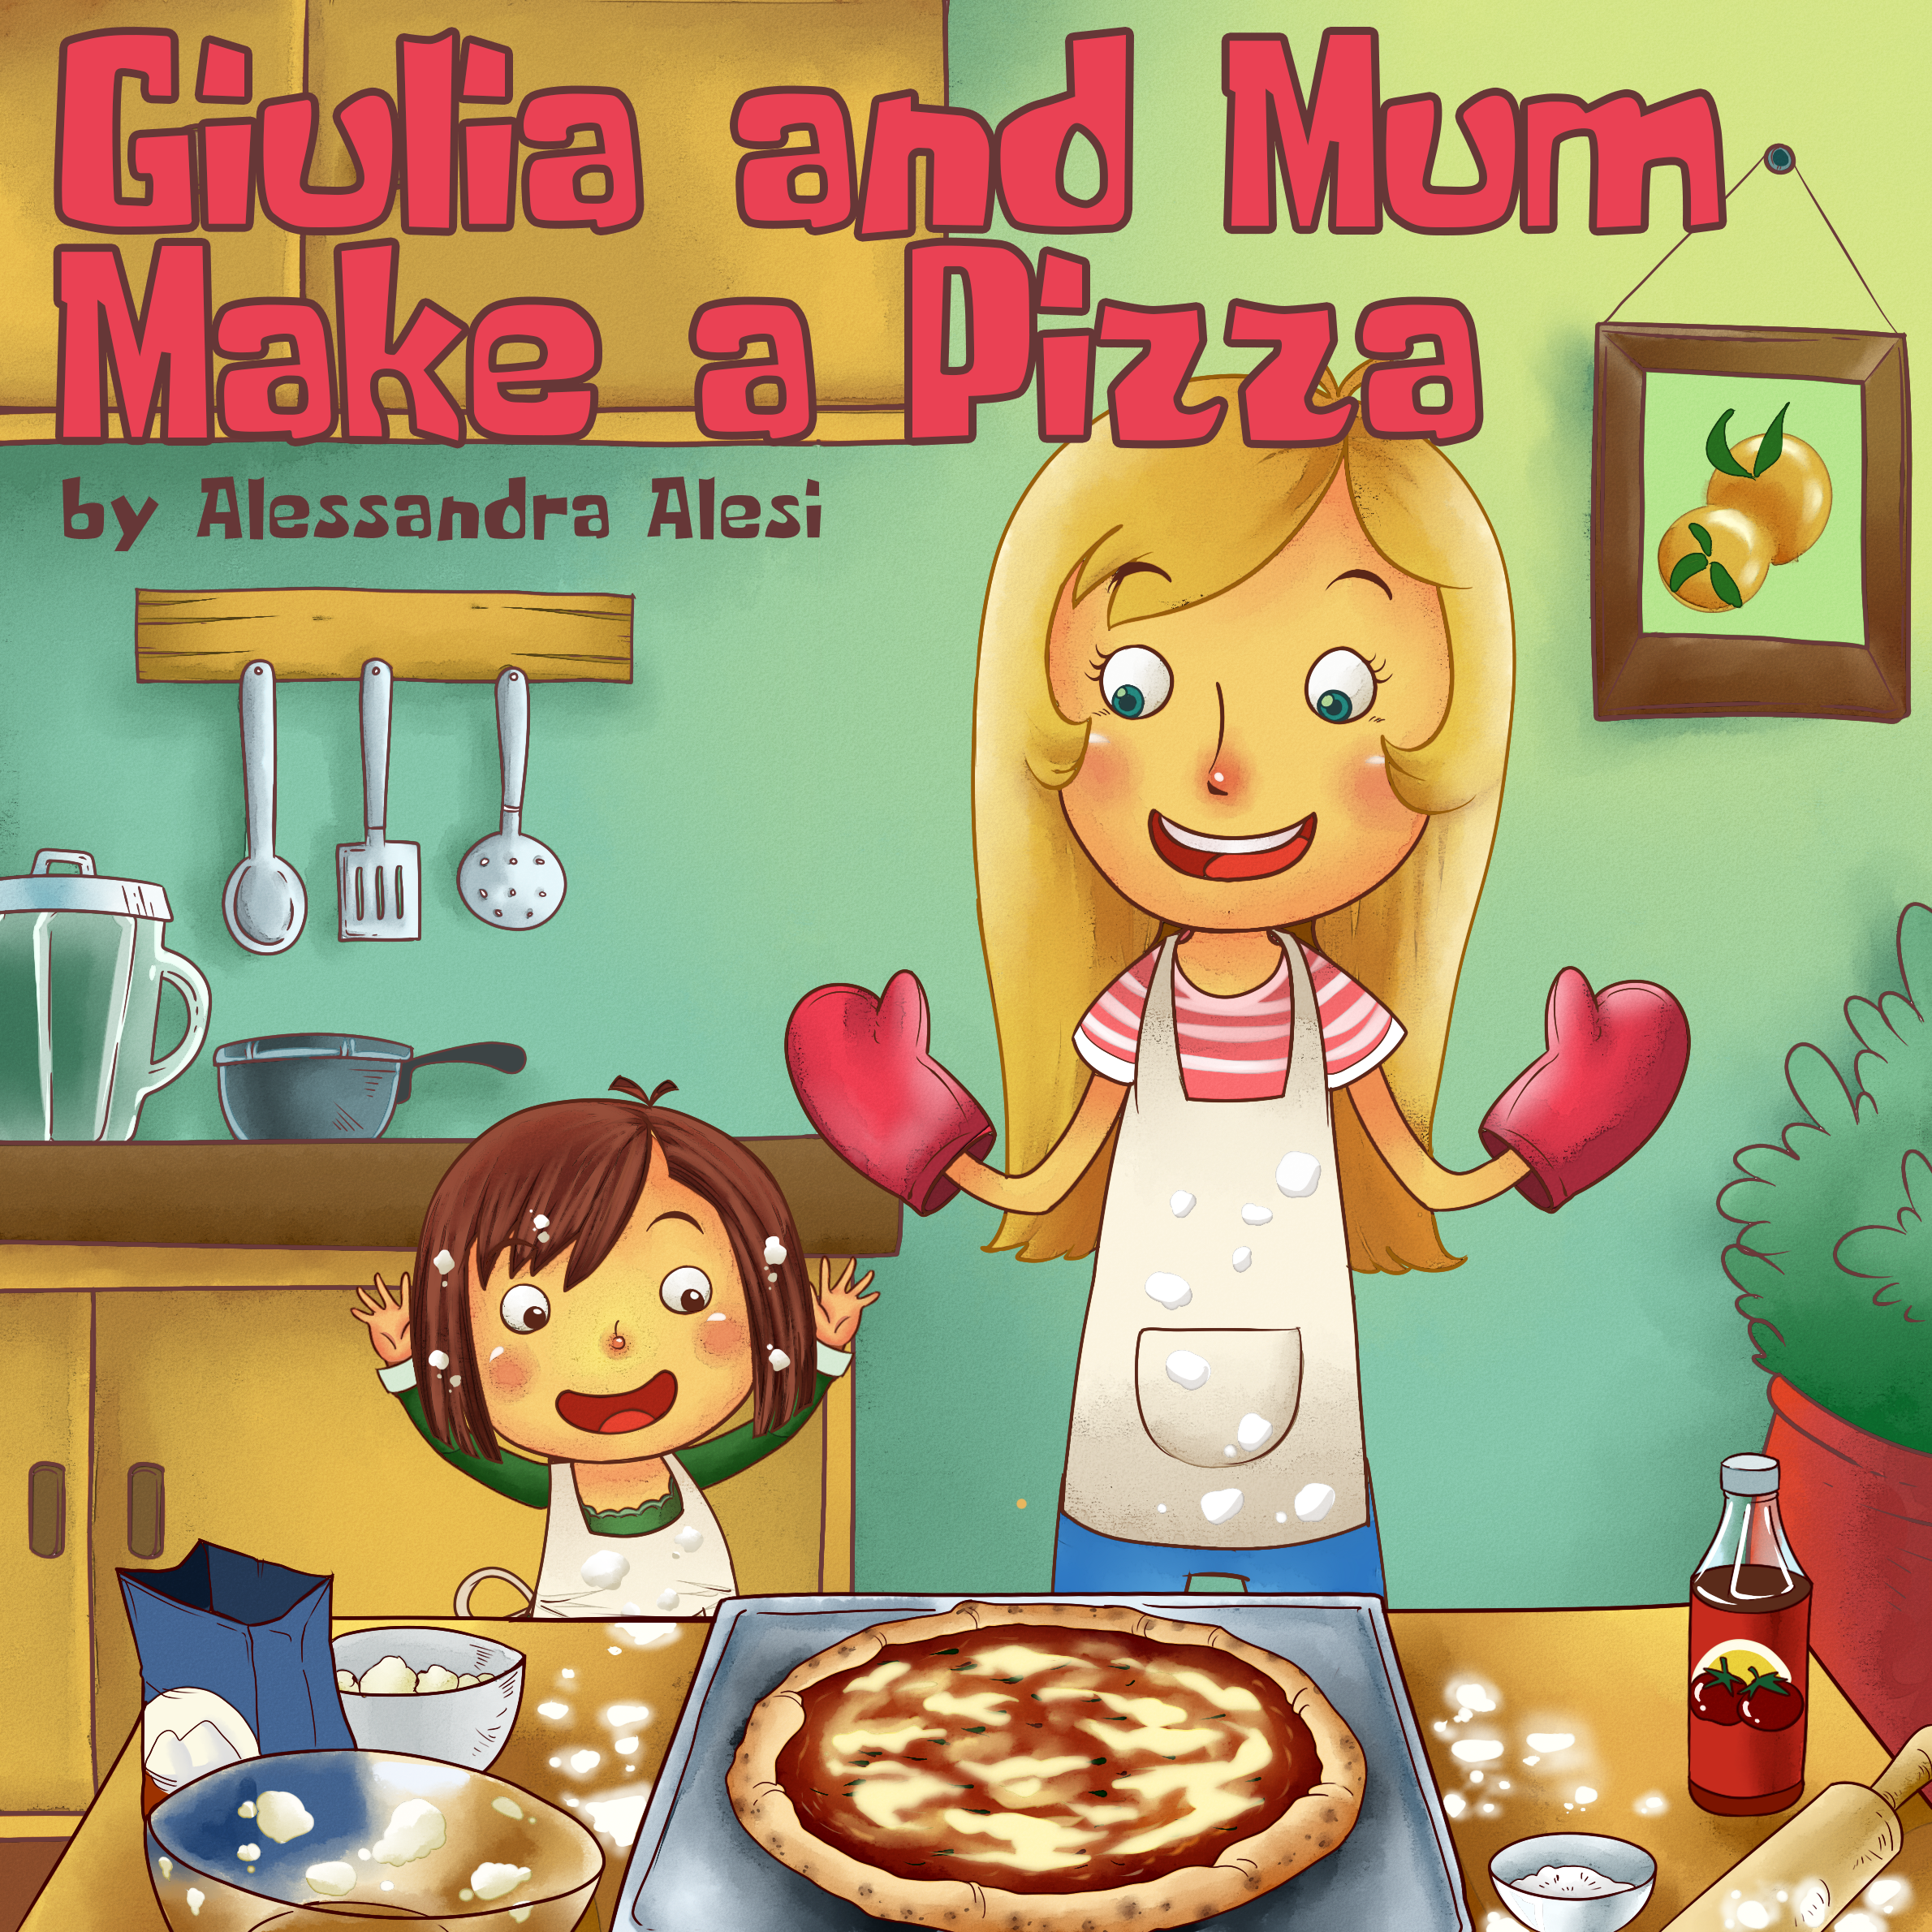 Giulia and Mum Make a Pizza